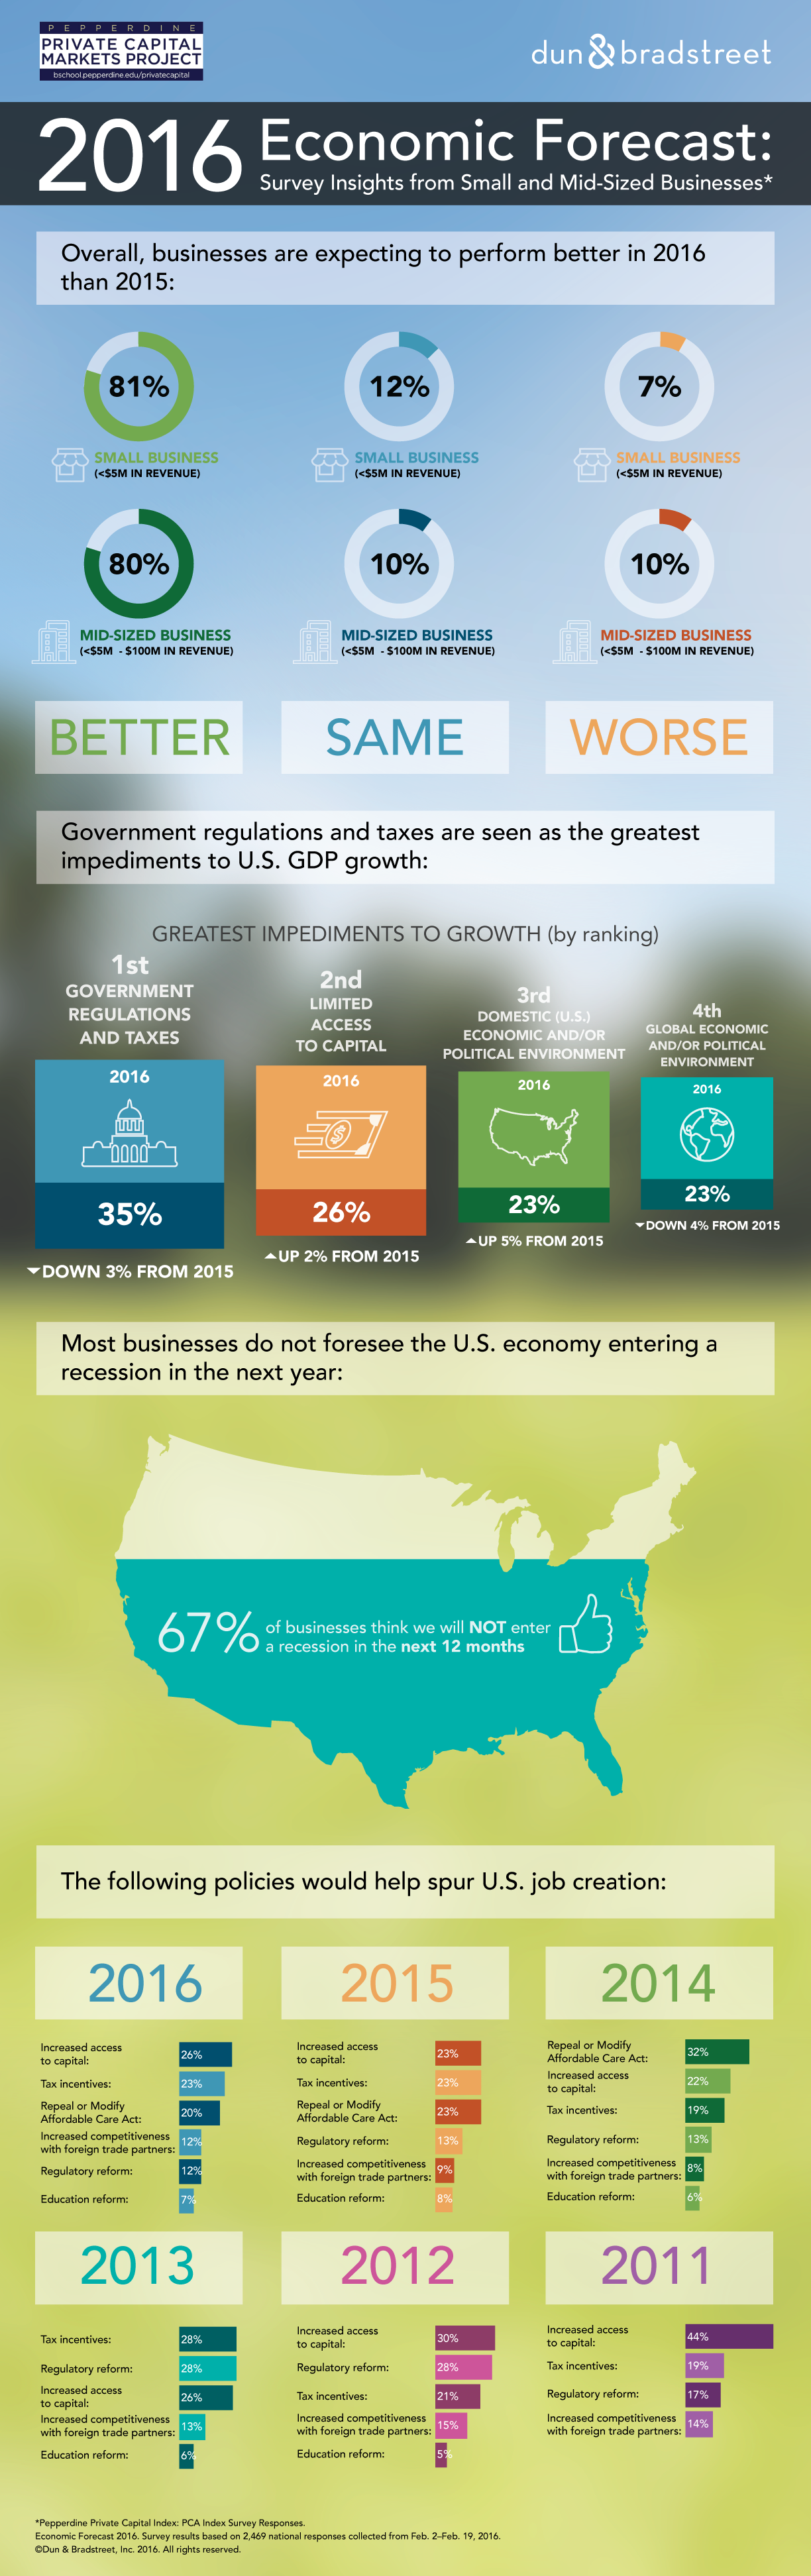 2016 Economic Forecast Infographic copy